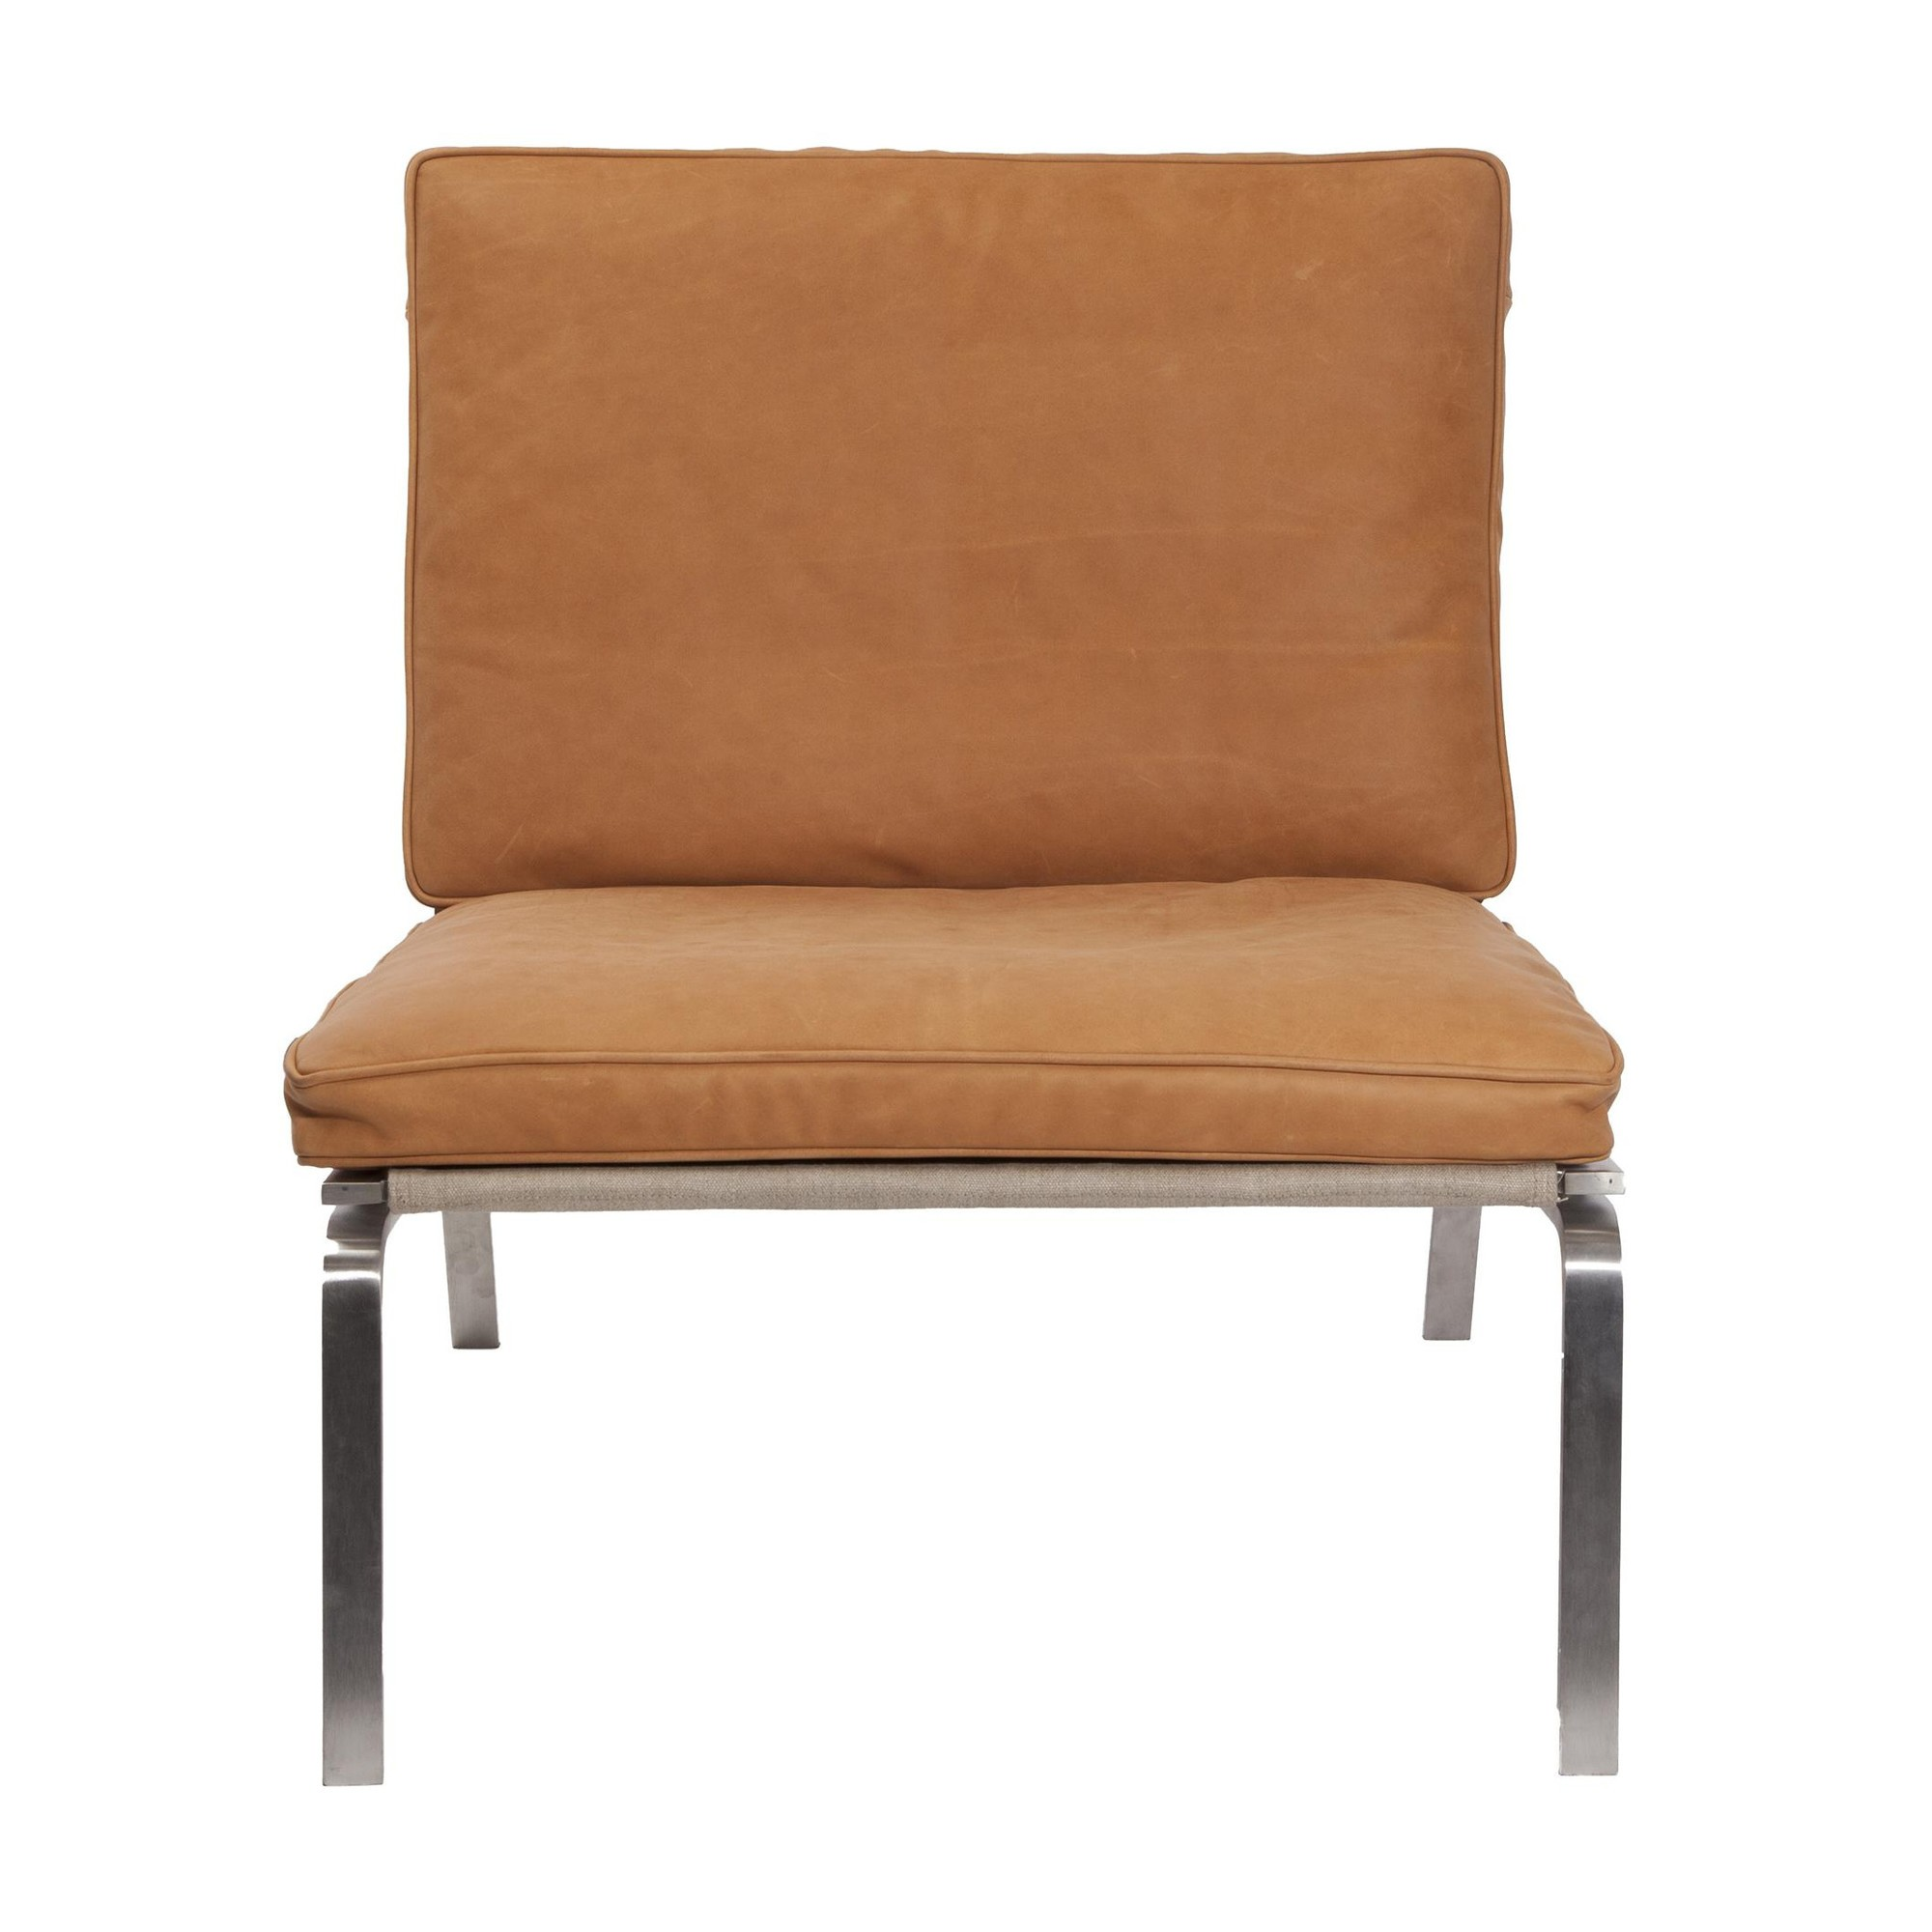 Norr 11 Man Lounge Chair Sessel Ambientedirect